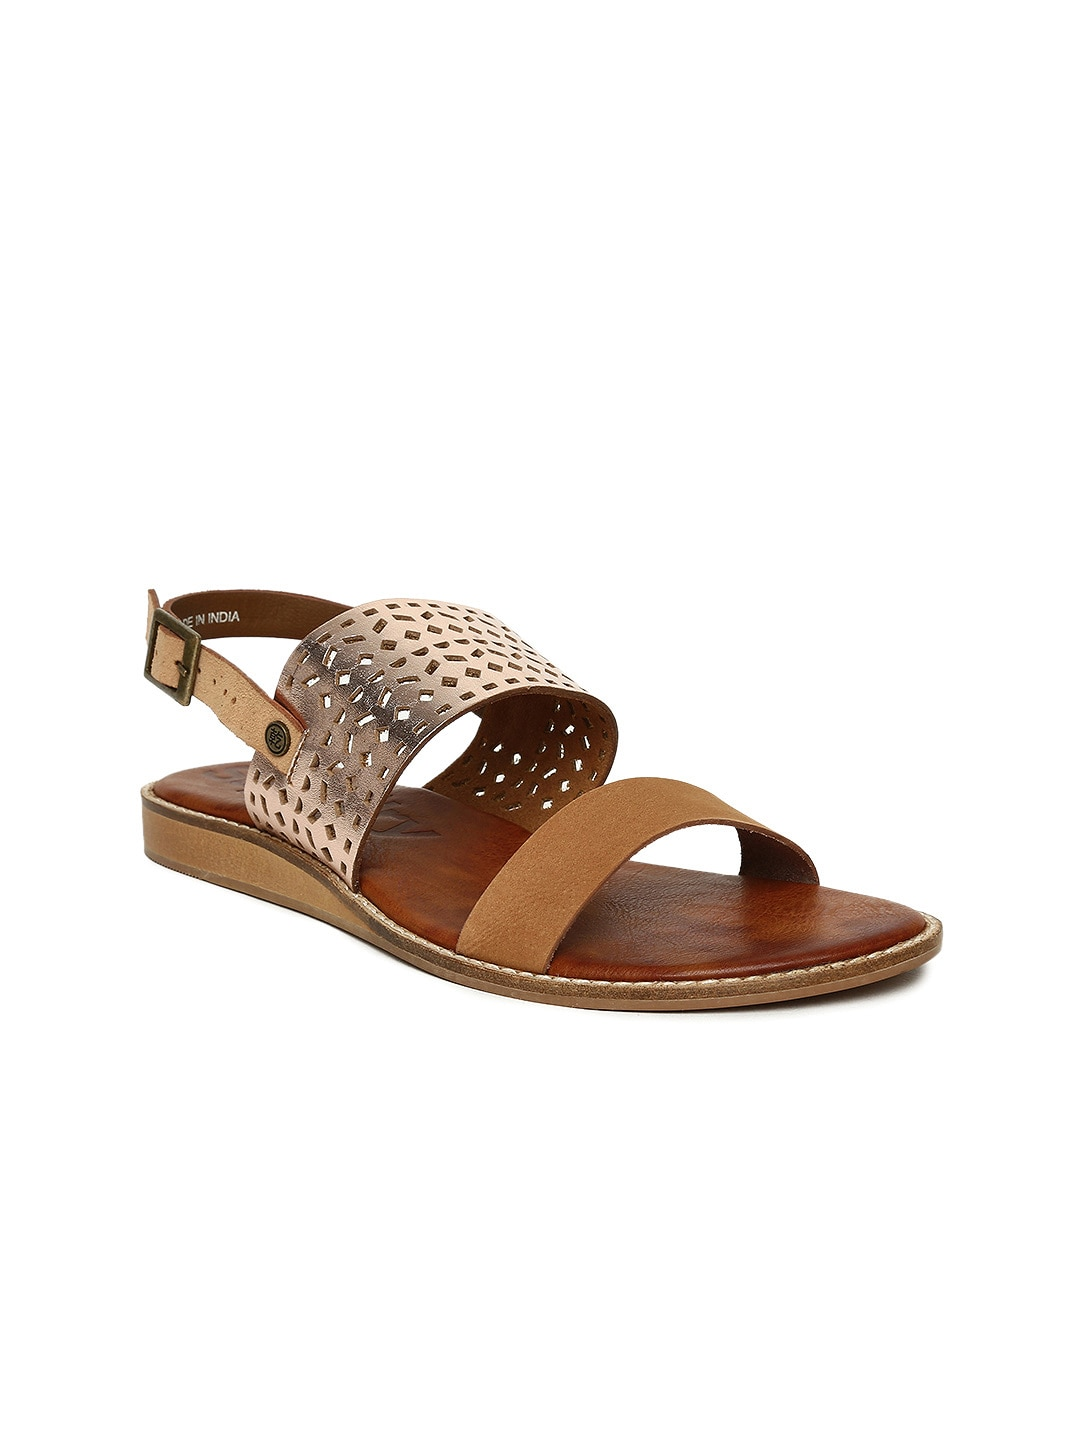 Superdry Women Brown & Rose Gold-Toned Colourblocked Flats image